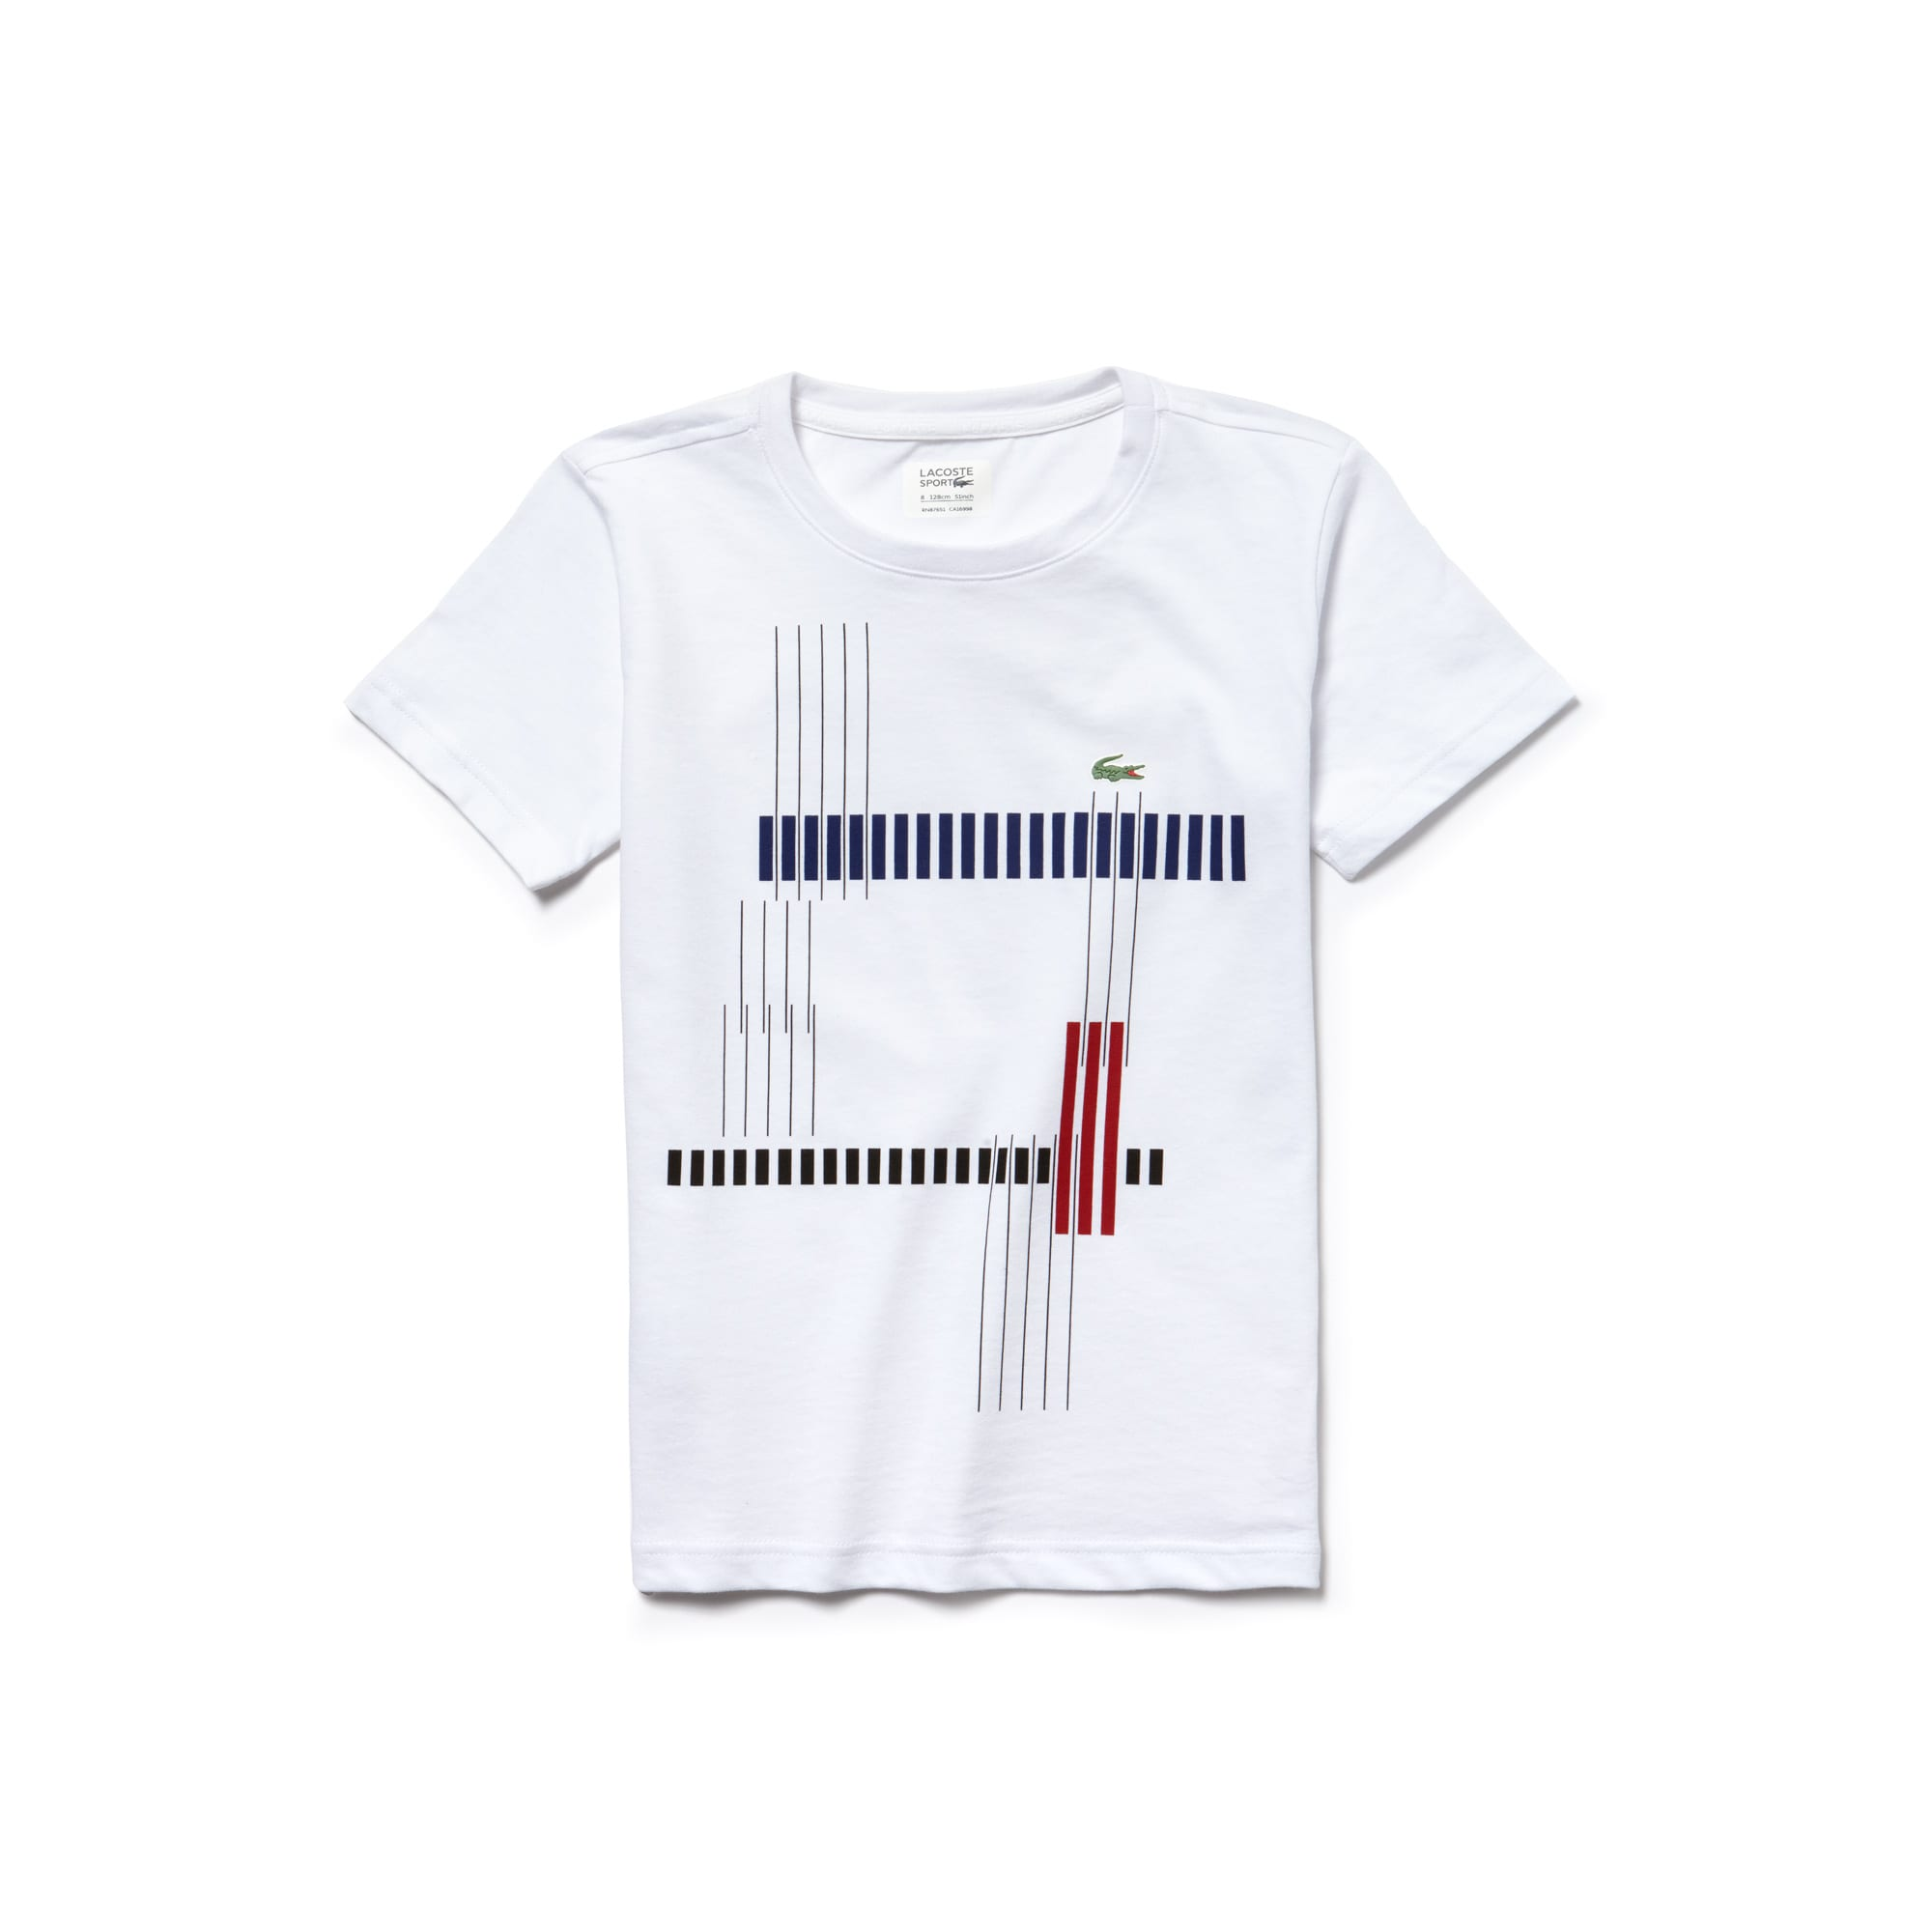 Boys'  SPORT Tennis Graphic Print Jersey T-shirt